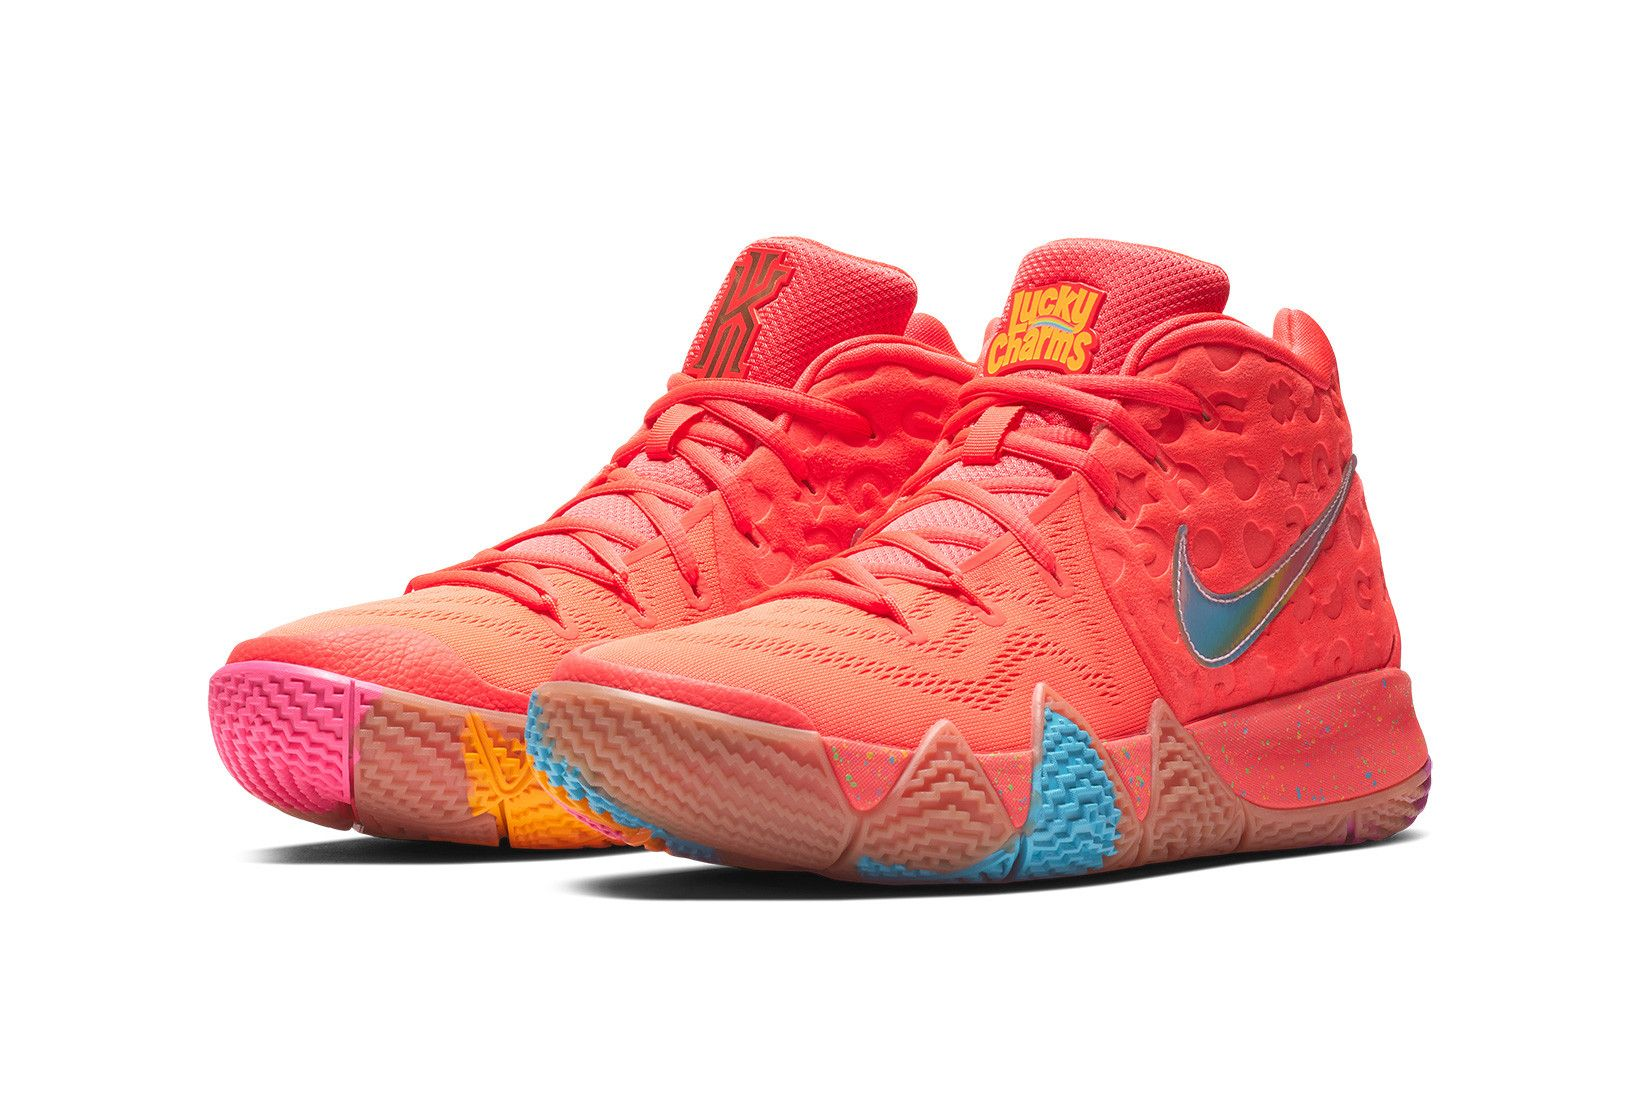 low priced 4c554 a38be The Nike Kyrie 4